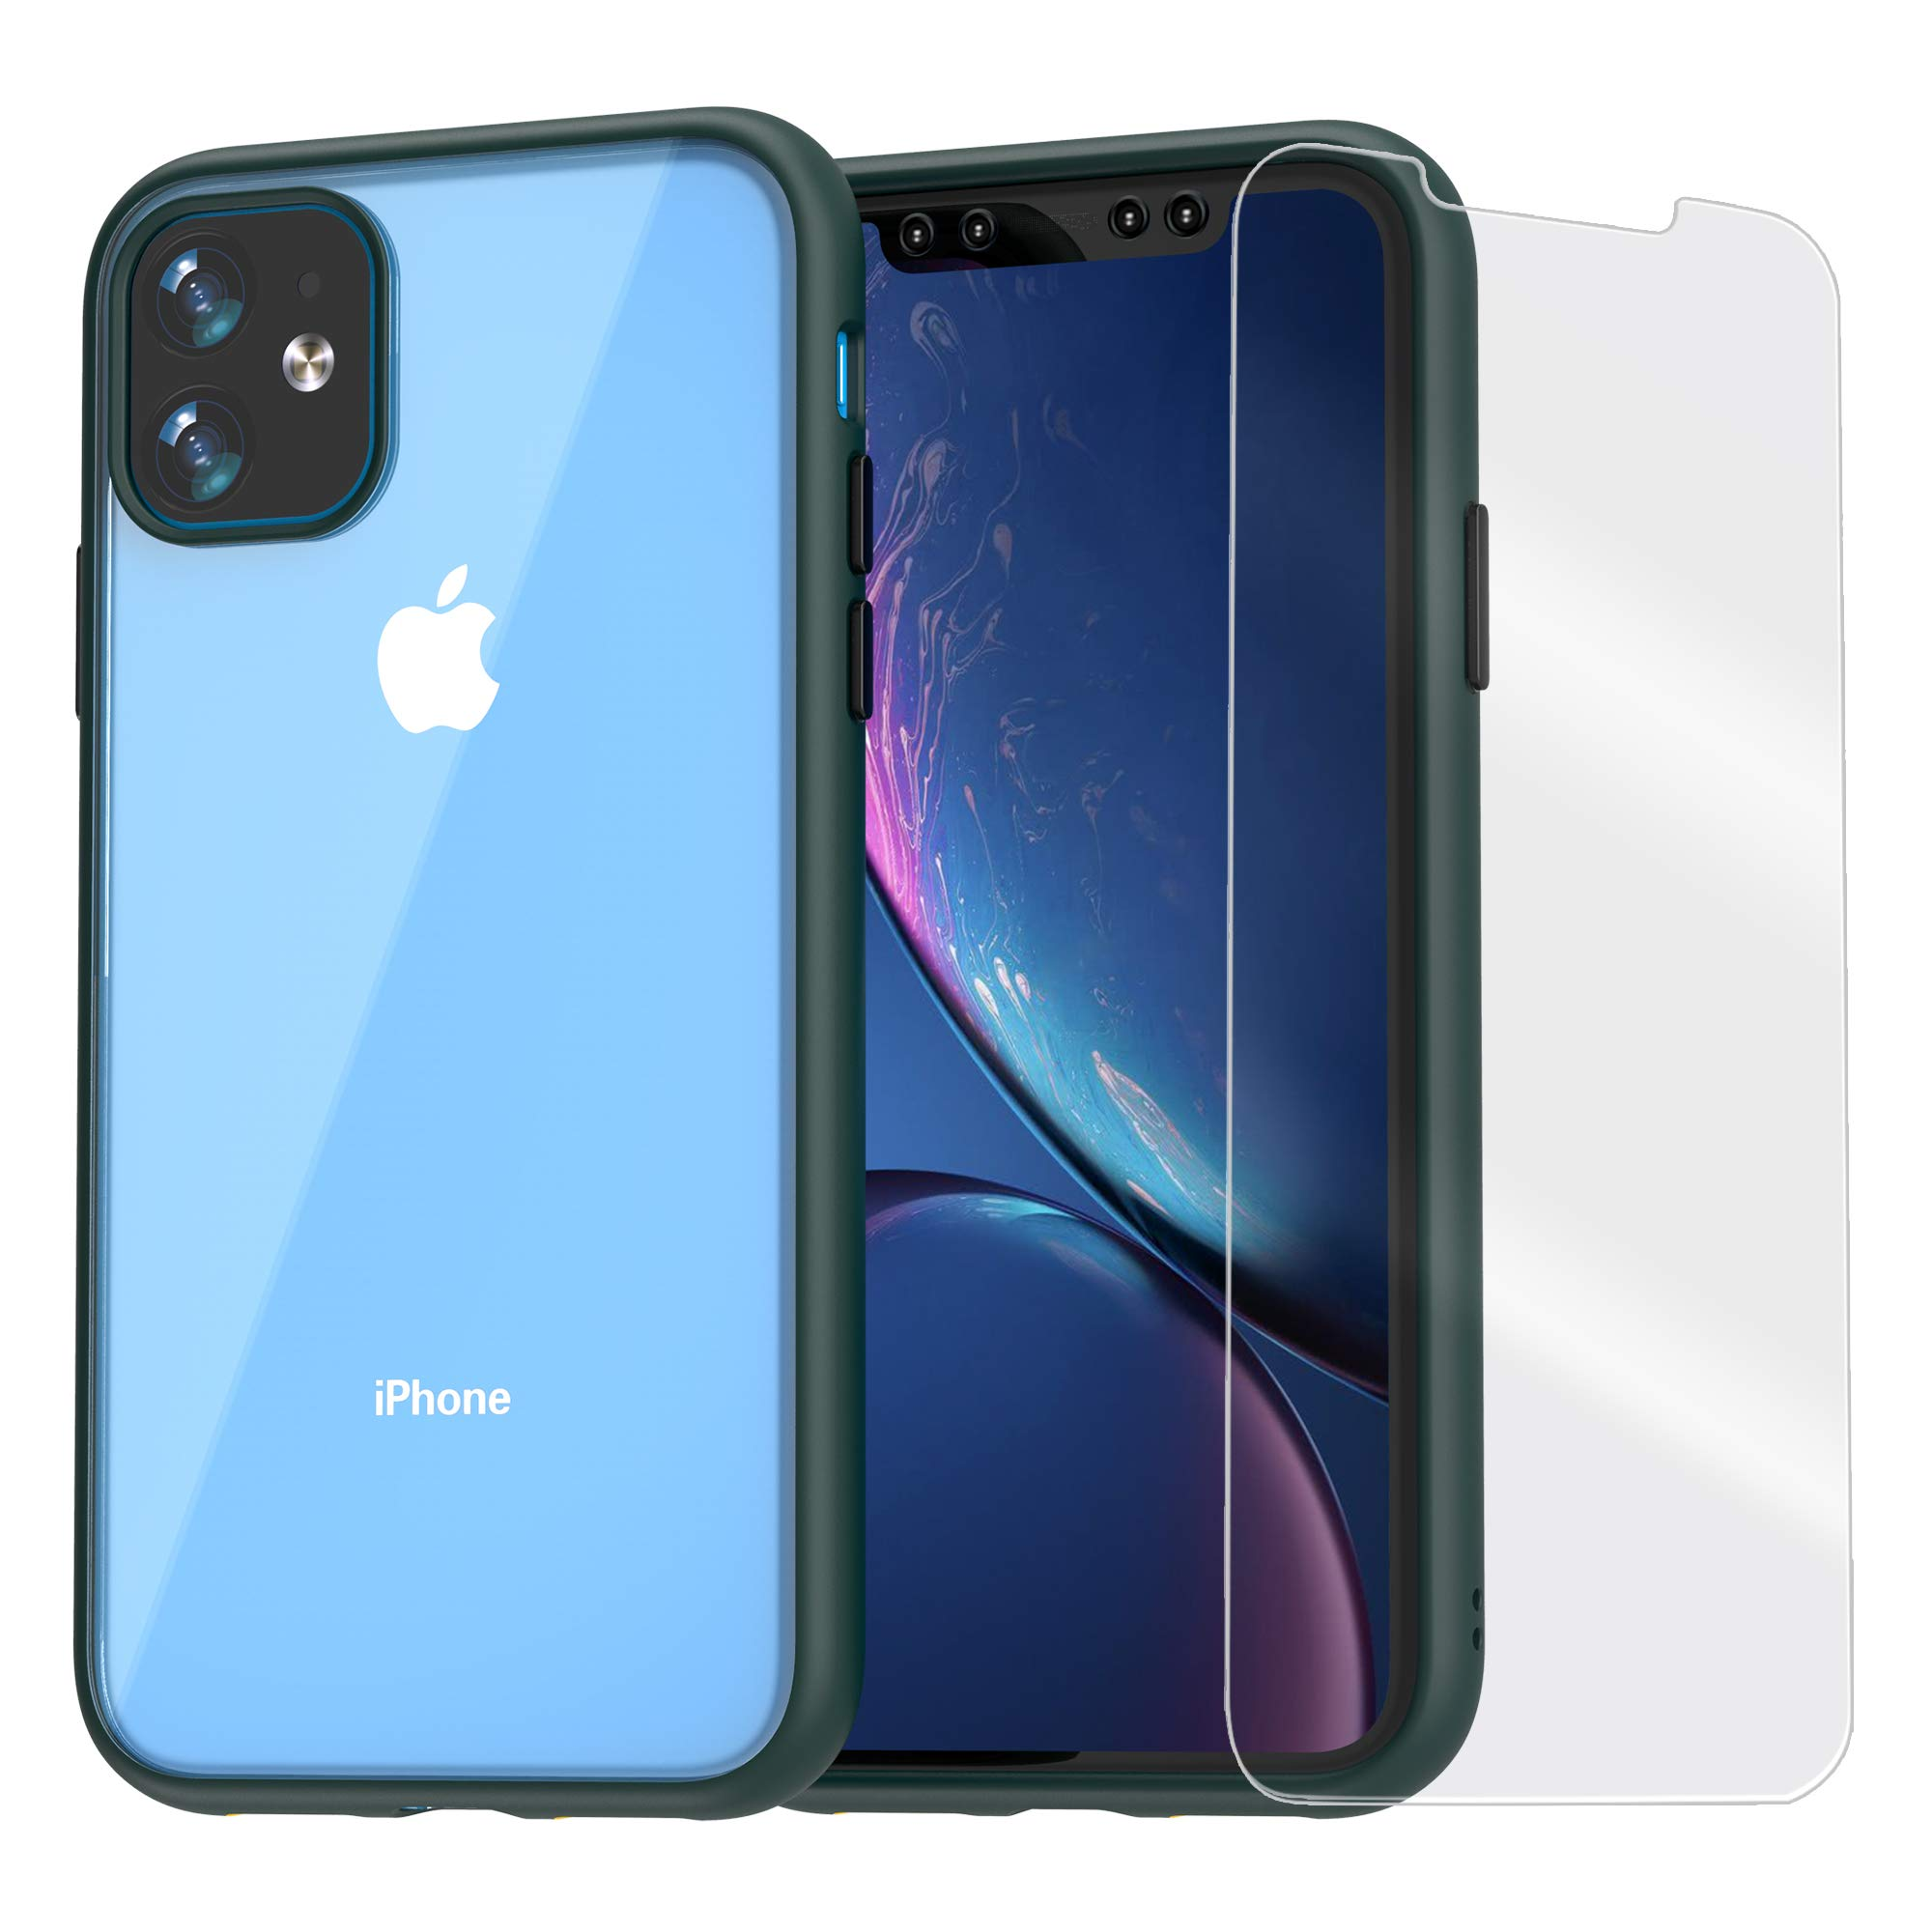 Funda + Vidrio Iphone 11 AMOSRY [7WZK4WWK]